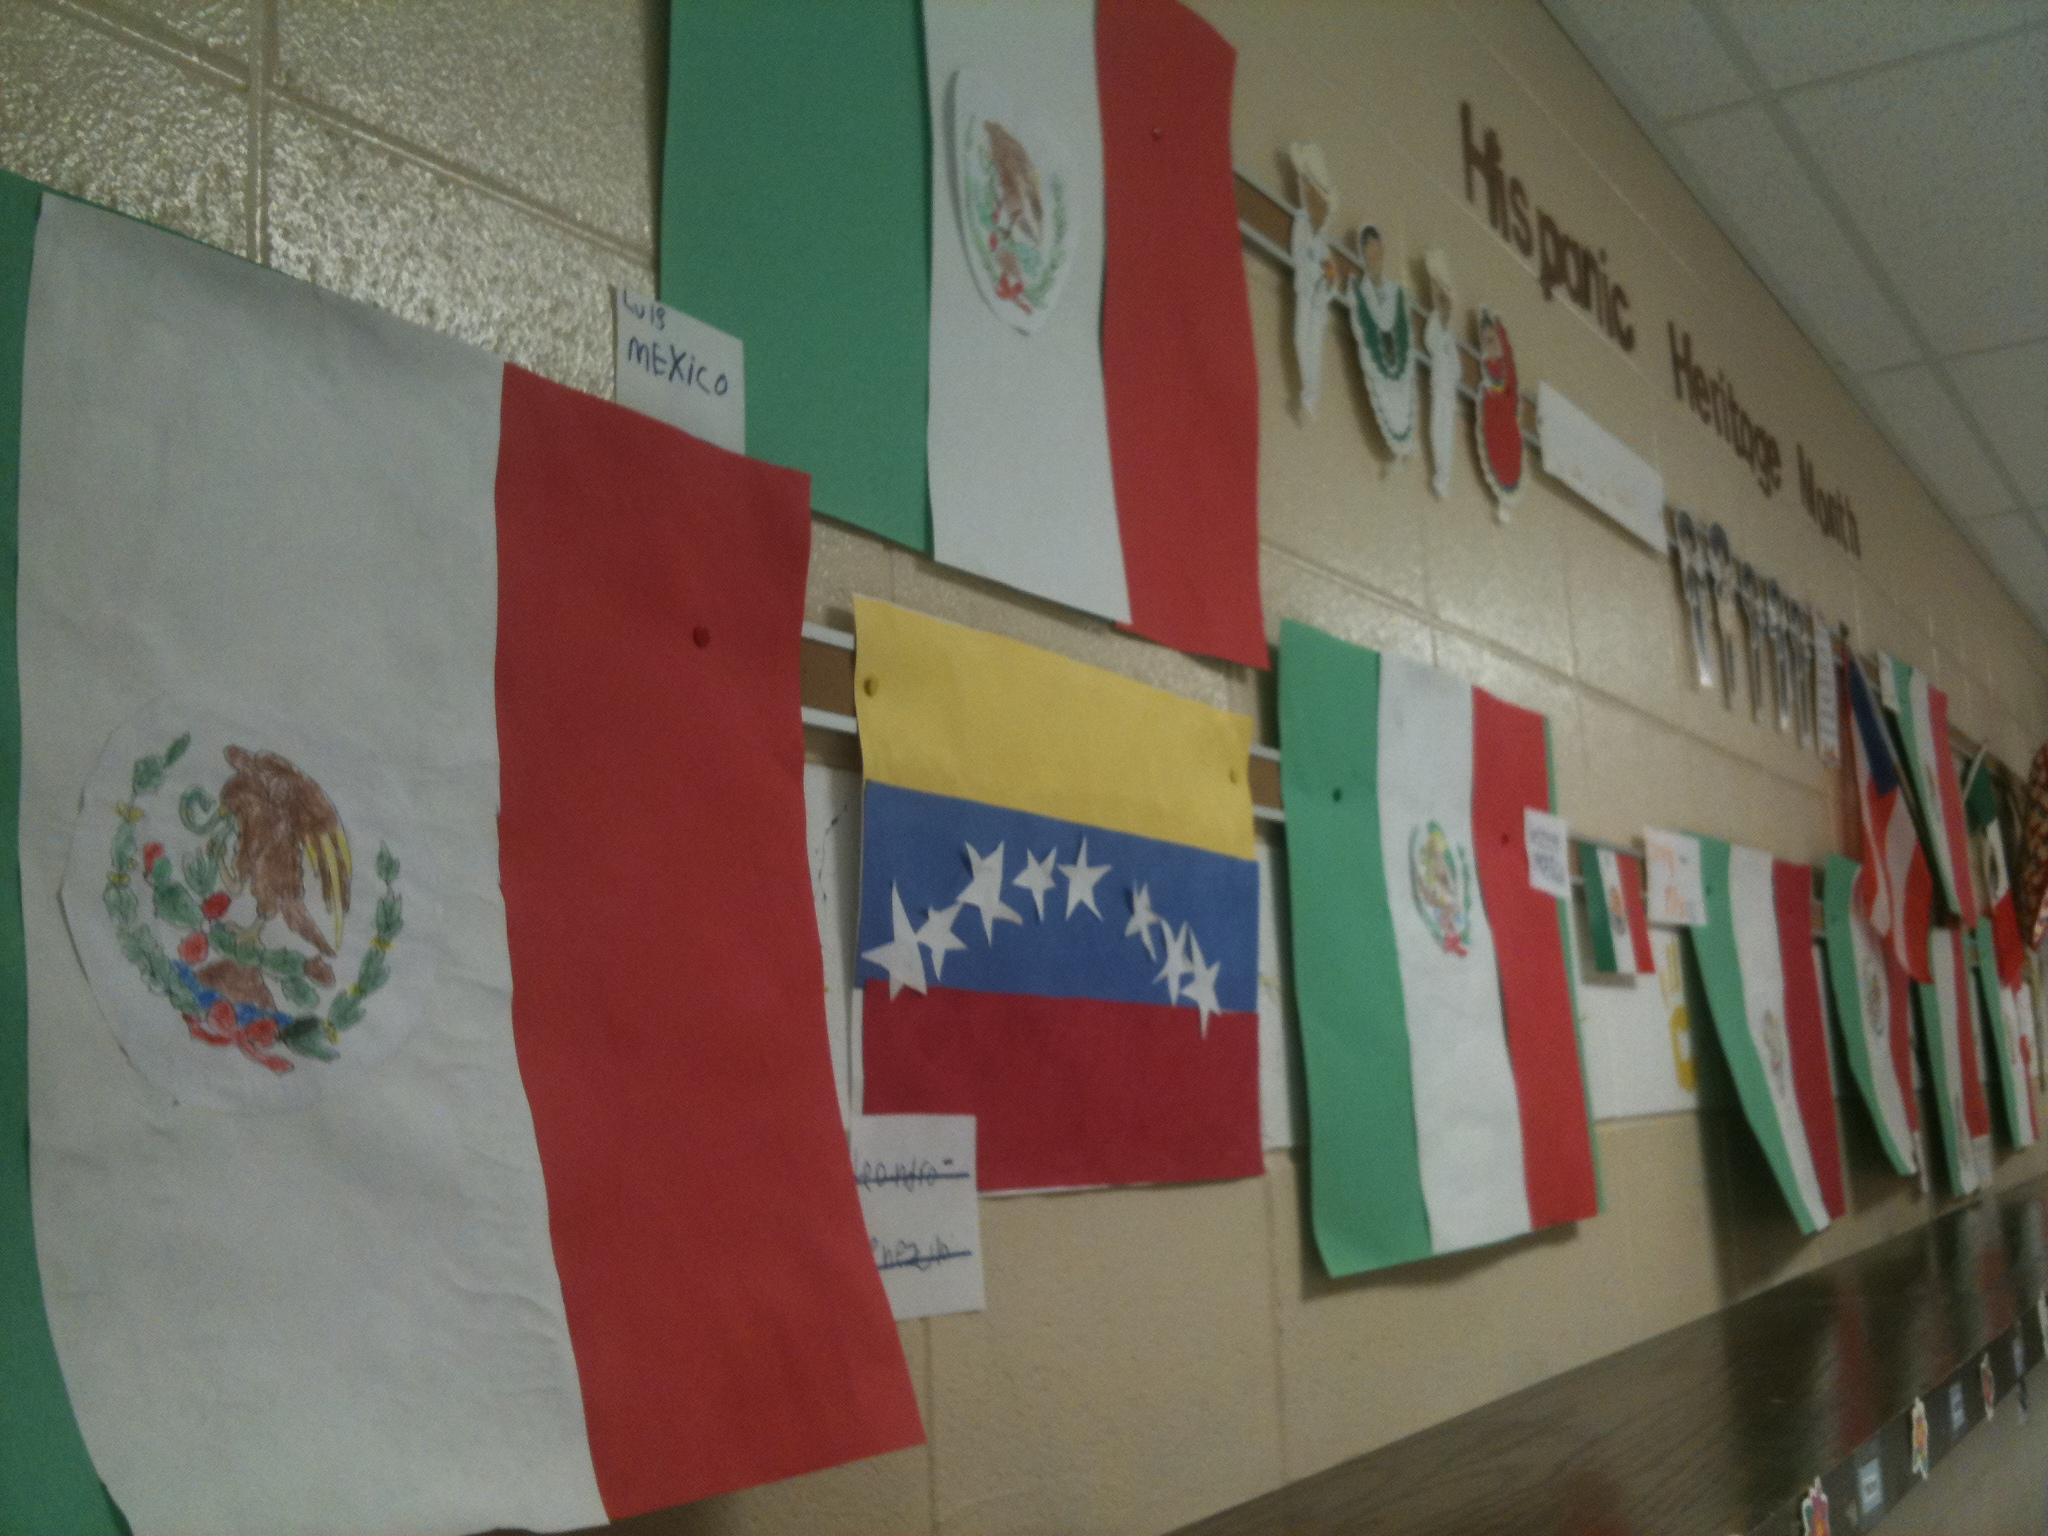 A hallway outside of a bilingual classroom, celebrating Hispanic Heritage Month.  There are student made flags of Mexico and Venezuela.